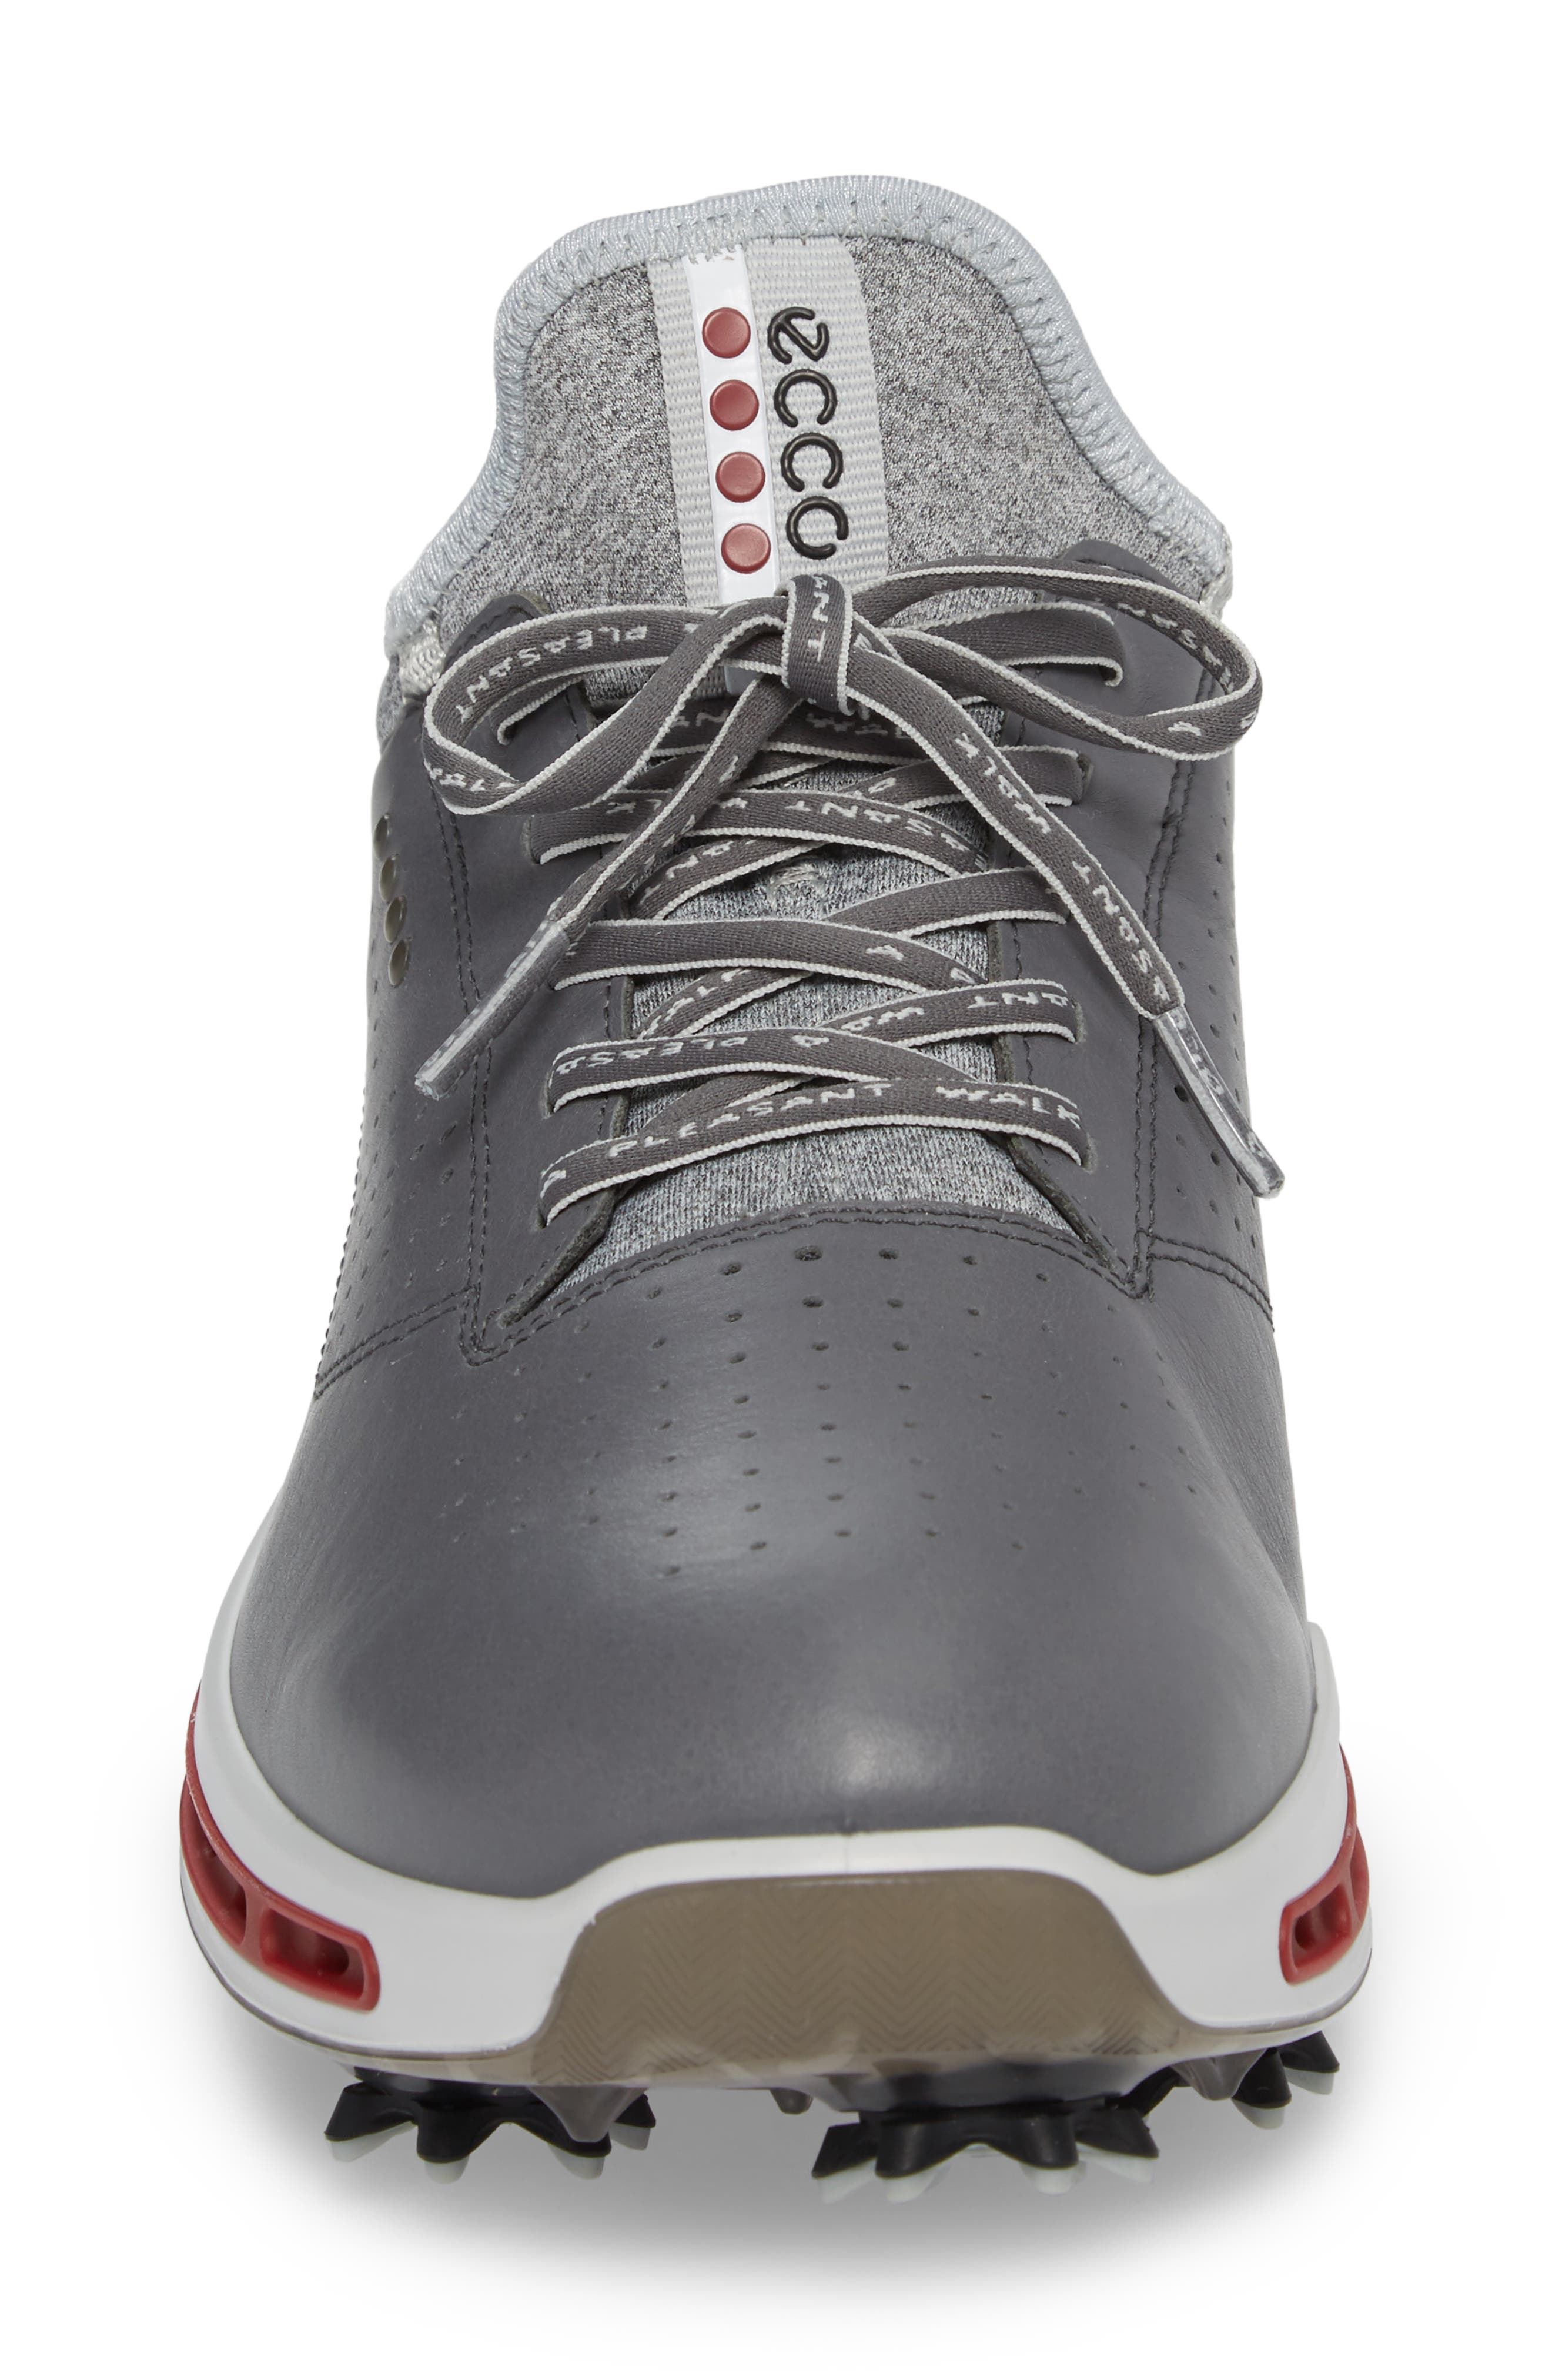 Cool 18 Gore-Tex Golf Shoe,                             Alternate thumbnail 4, color,                             DARK SHADOW LEATHER